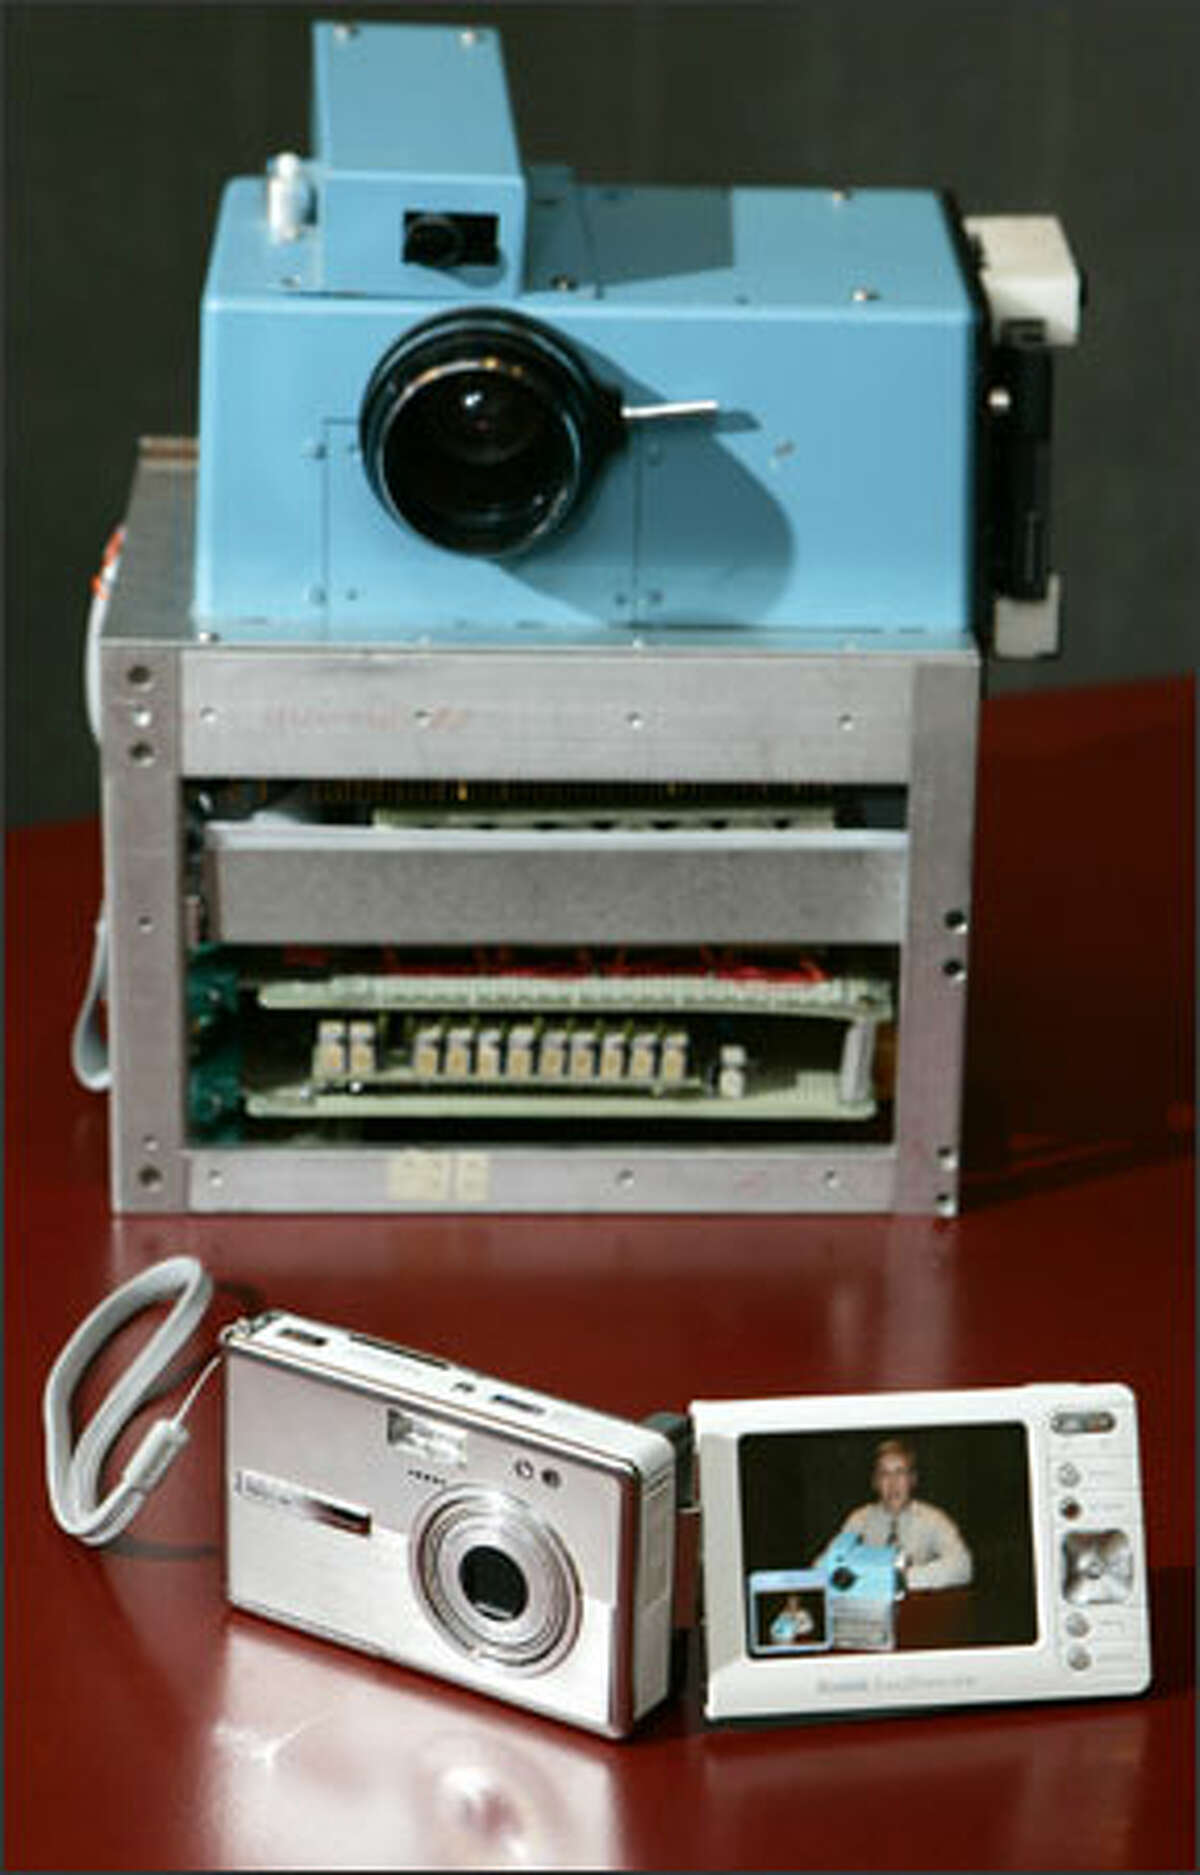 Kodak's latest digital camera, the EasyShare One, right, is much smaller than Sasson's prototype.